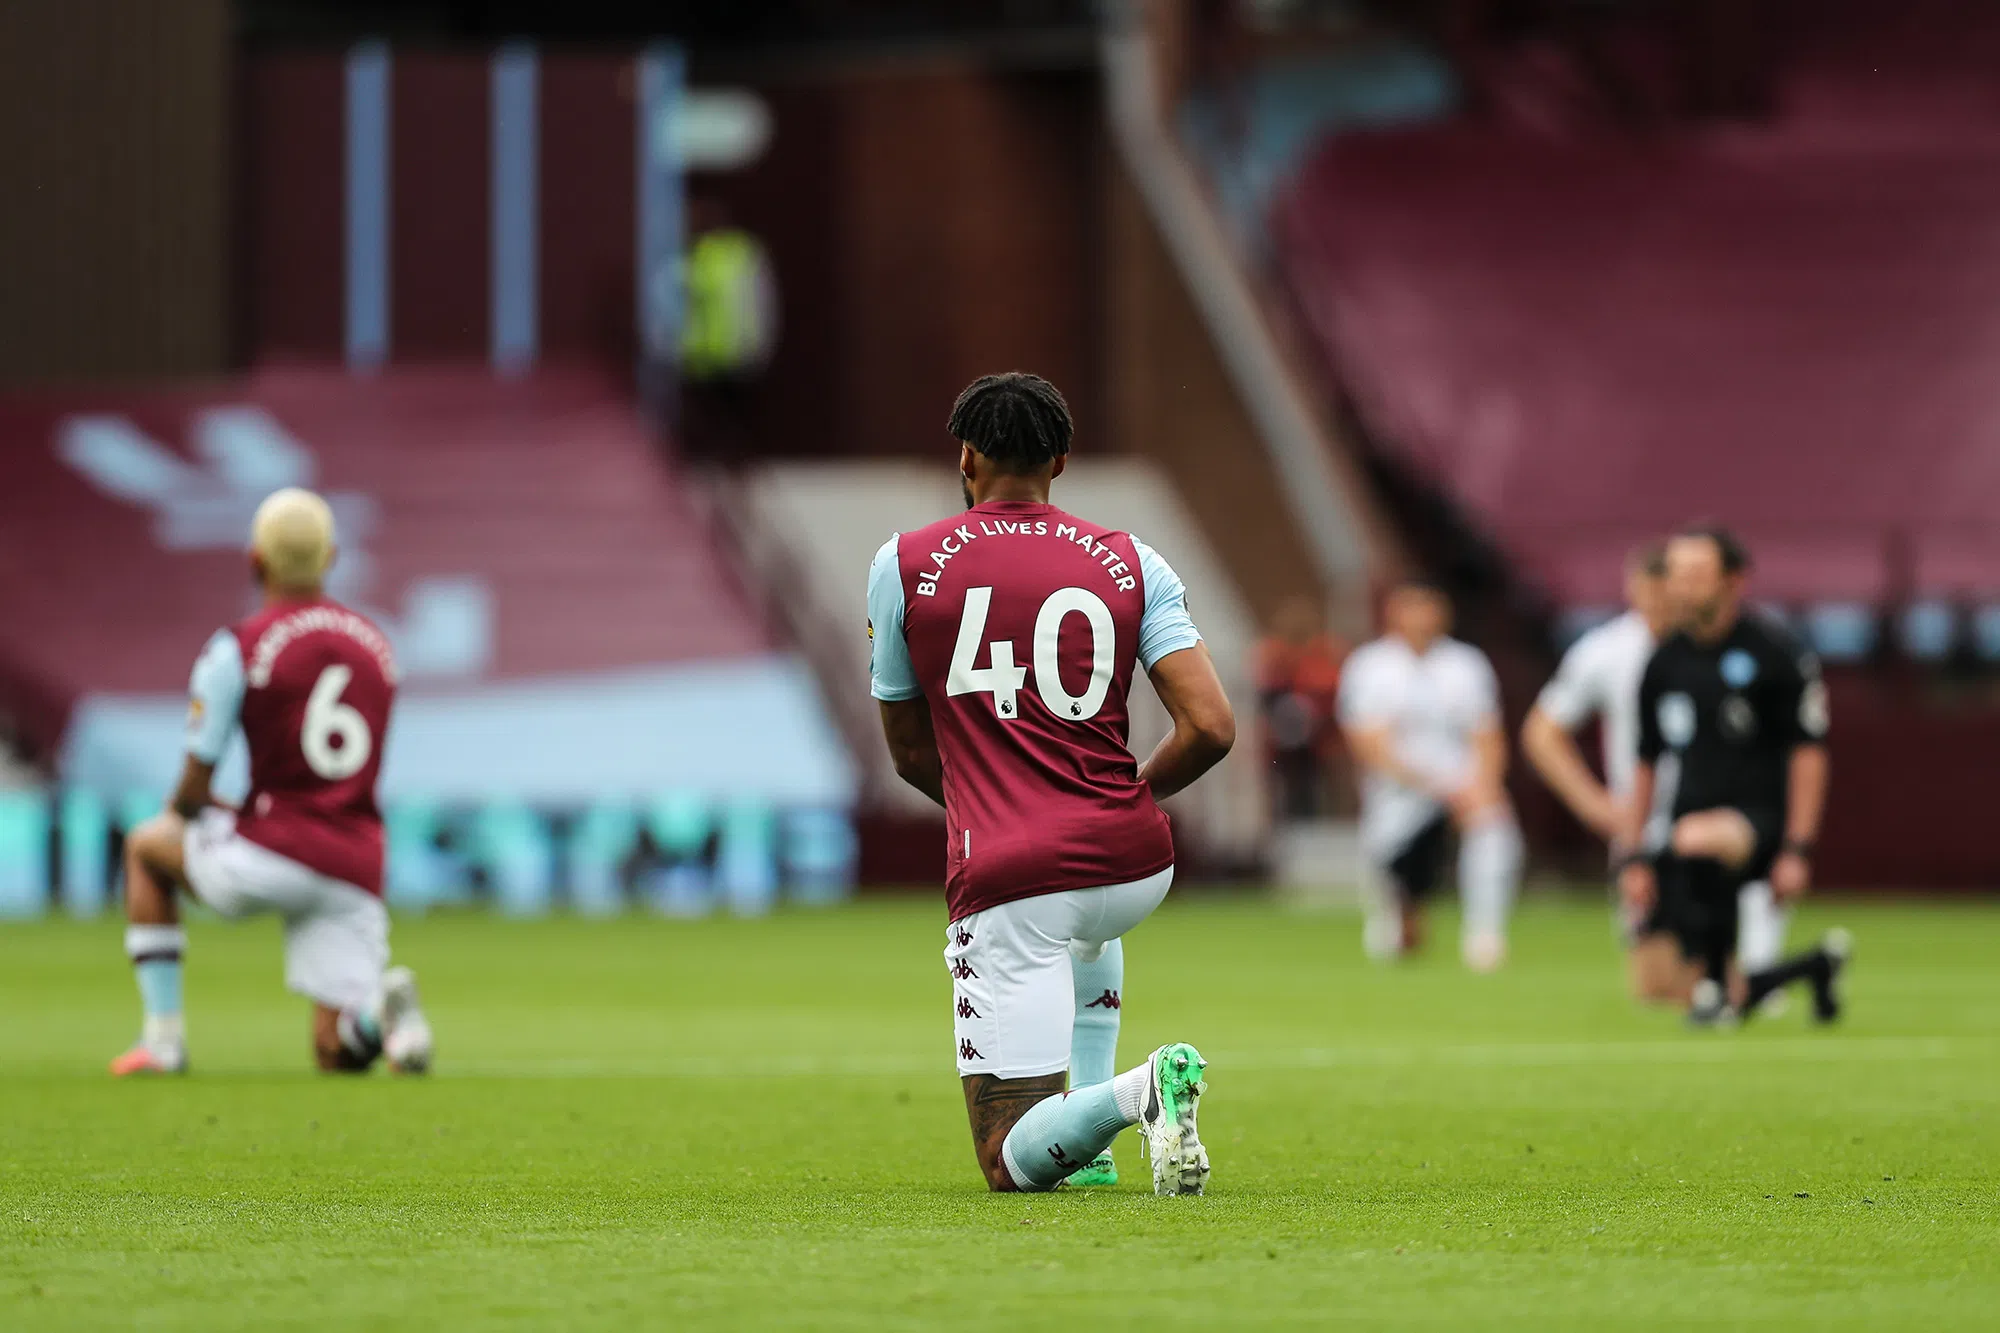 Aston Villa Players Take a Knee in Support of Black Lives Matter Campaign